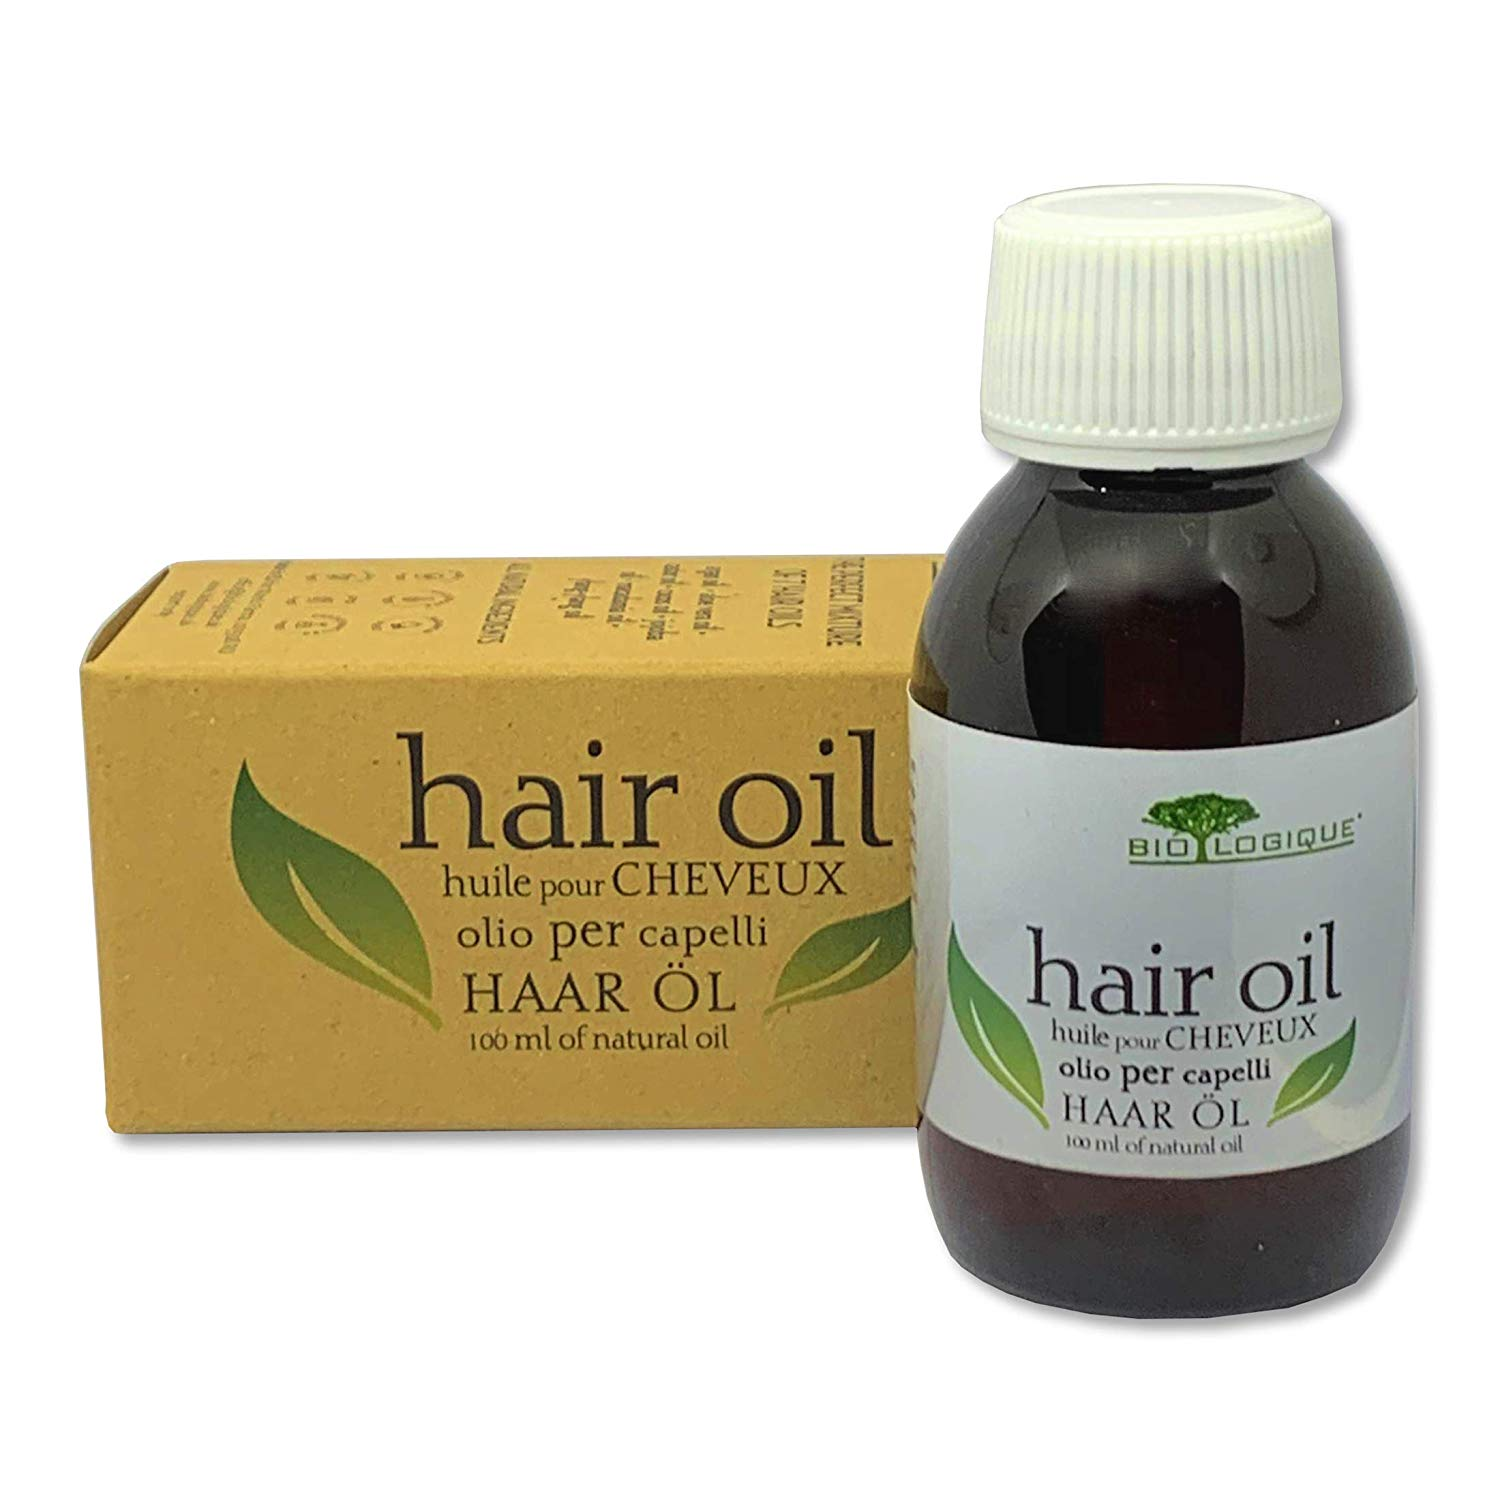 Hair Oil - THE PERFECT MIXTURE OF 7 HAIR OILS